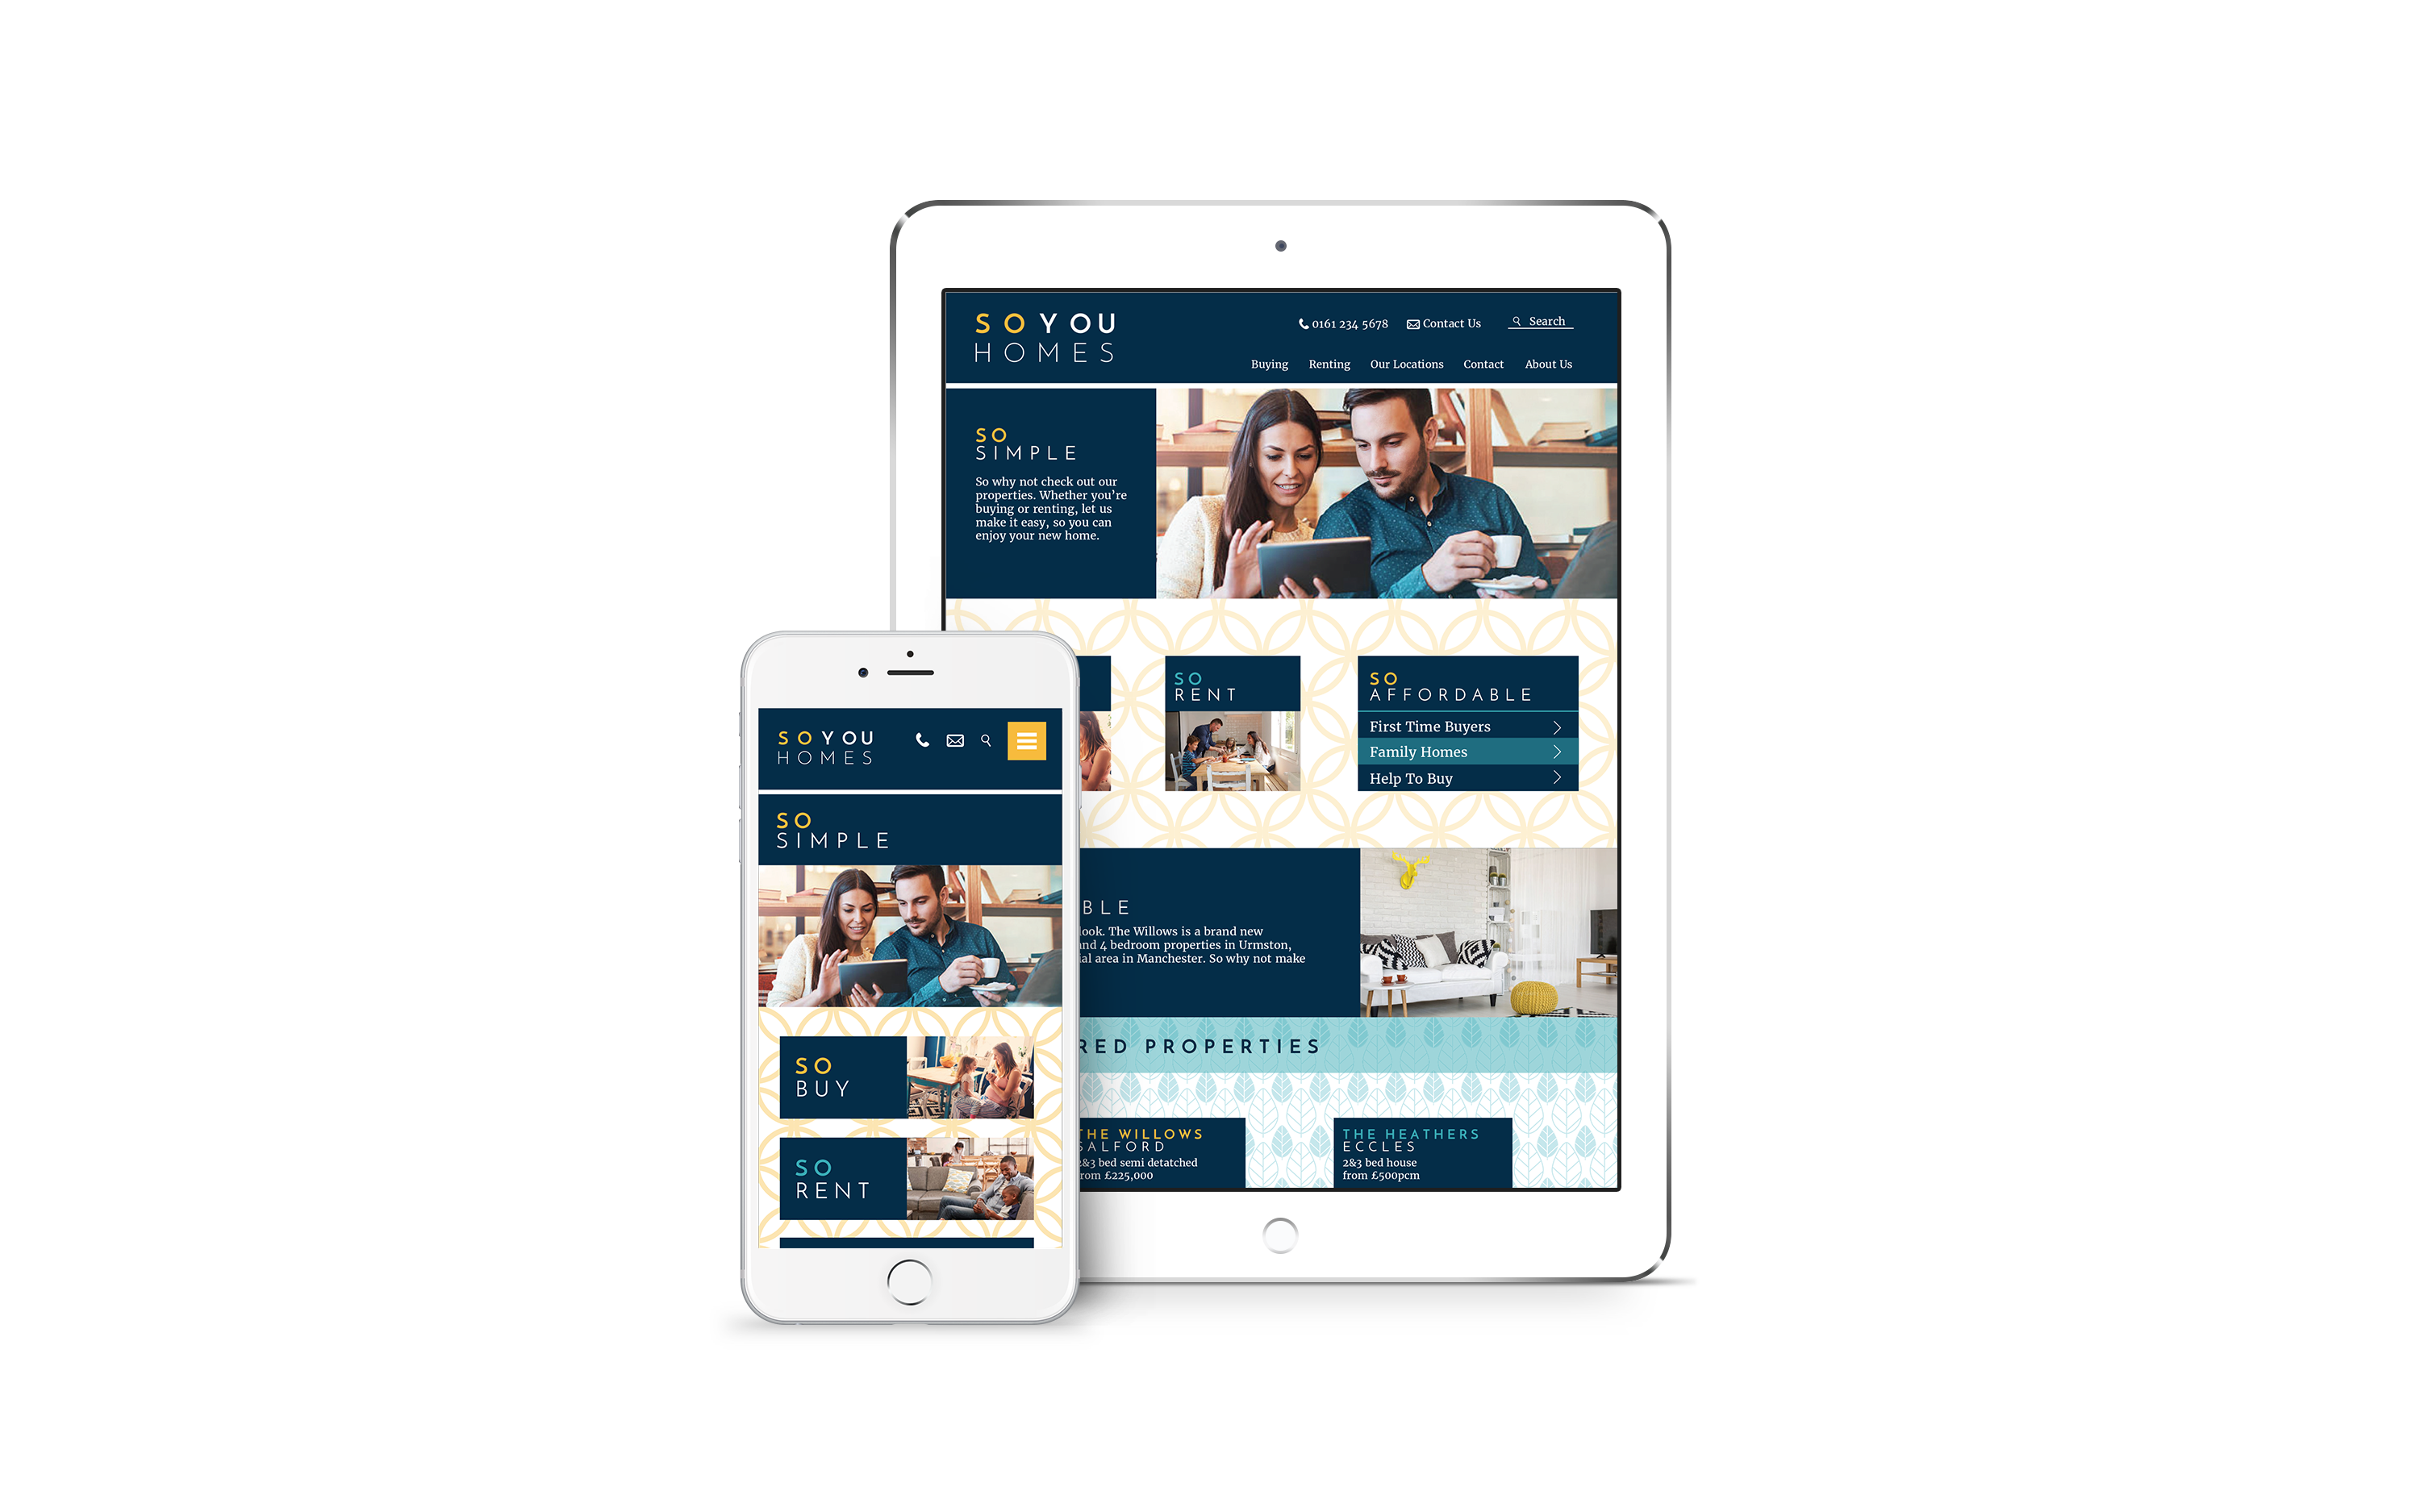 So You Homes website homepage shown on tablet and iphone